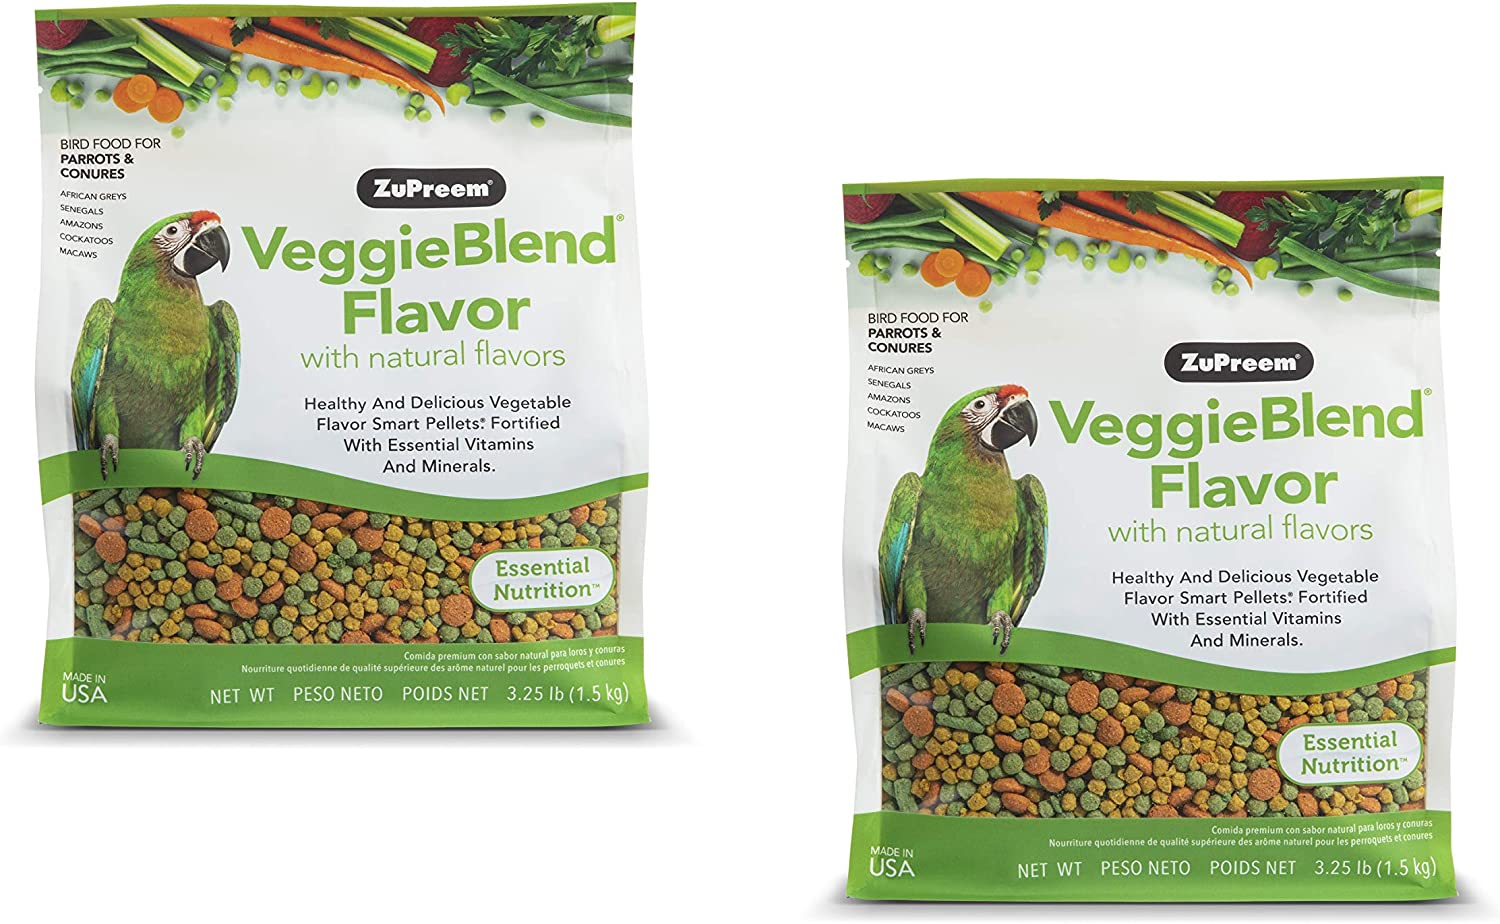 ZuPreem VeggieBlend Smart Pellets Bird Food for Parrots & Conures, 3 LB Bags (2-Pack) - Made in The USA, Daily Nutrition, Essential Vitamins, Minerals for African Greys, Amazons, Eclectus, Cockatoos